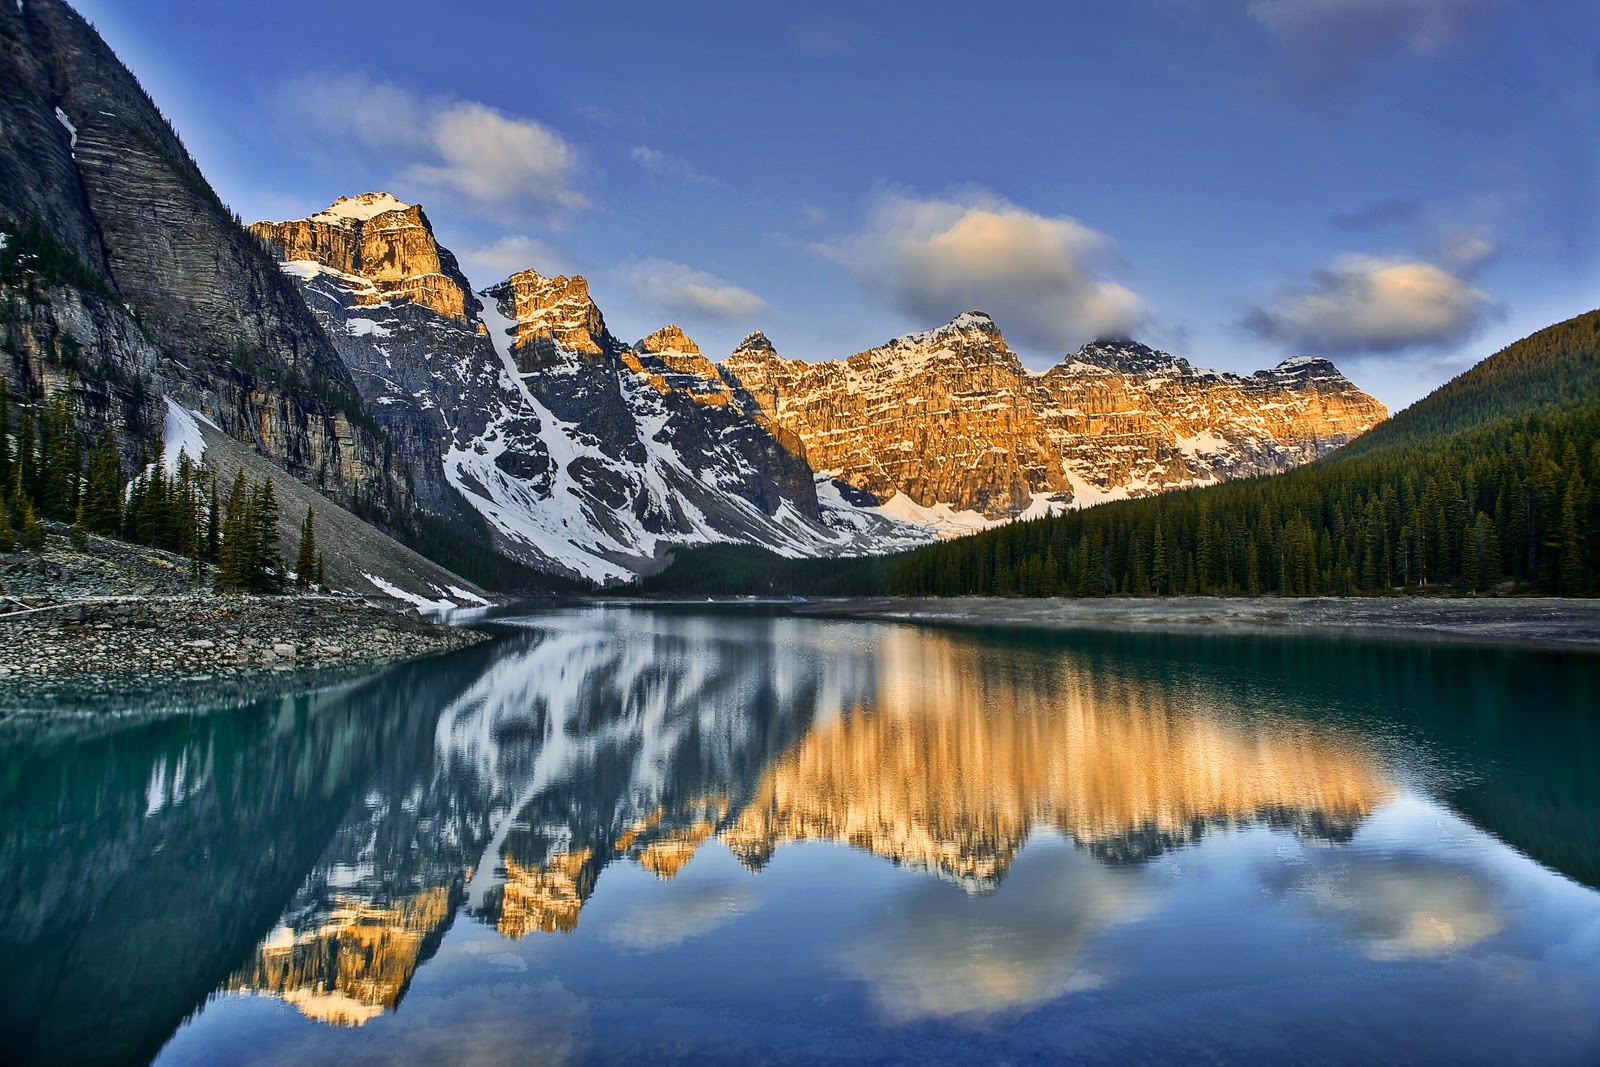 Outdoor Photography by Jack Booth: Canadian Landscape Photography